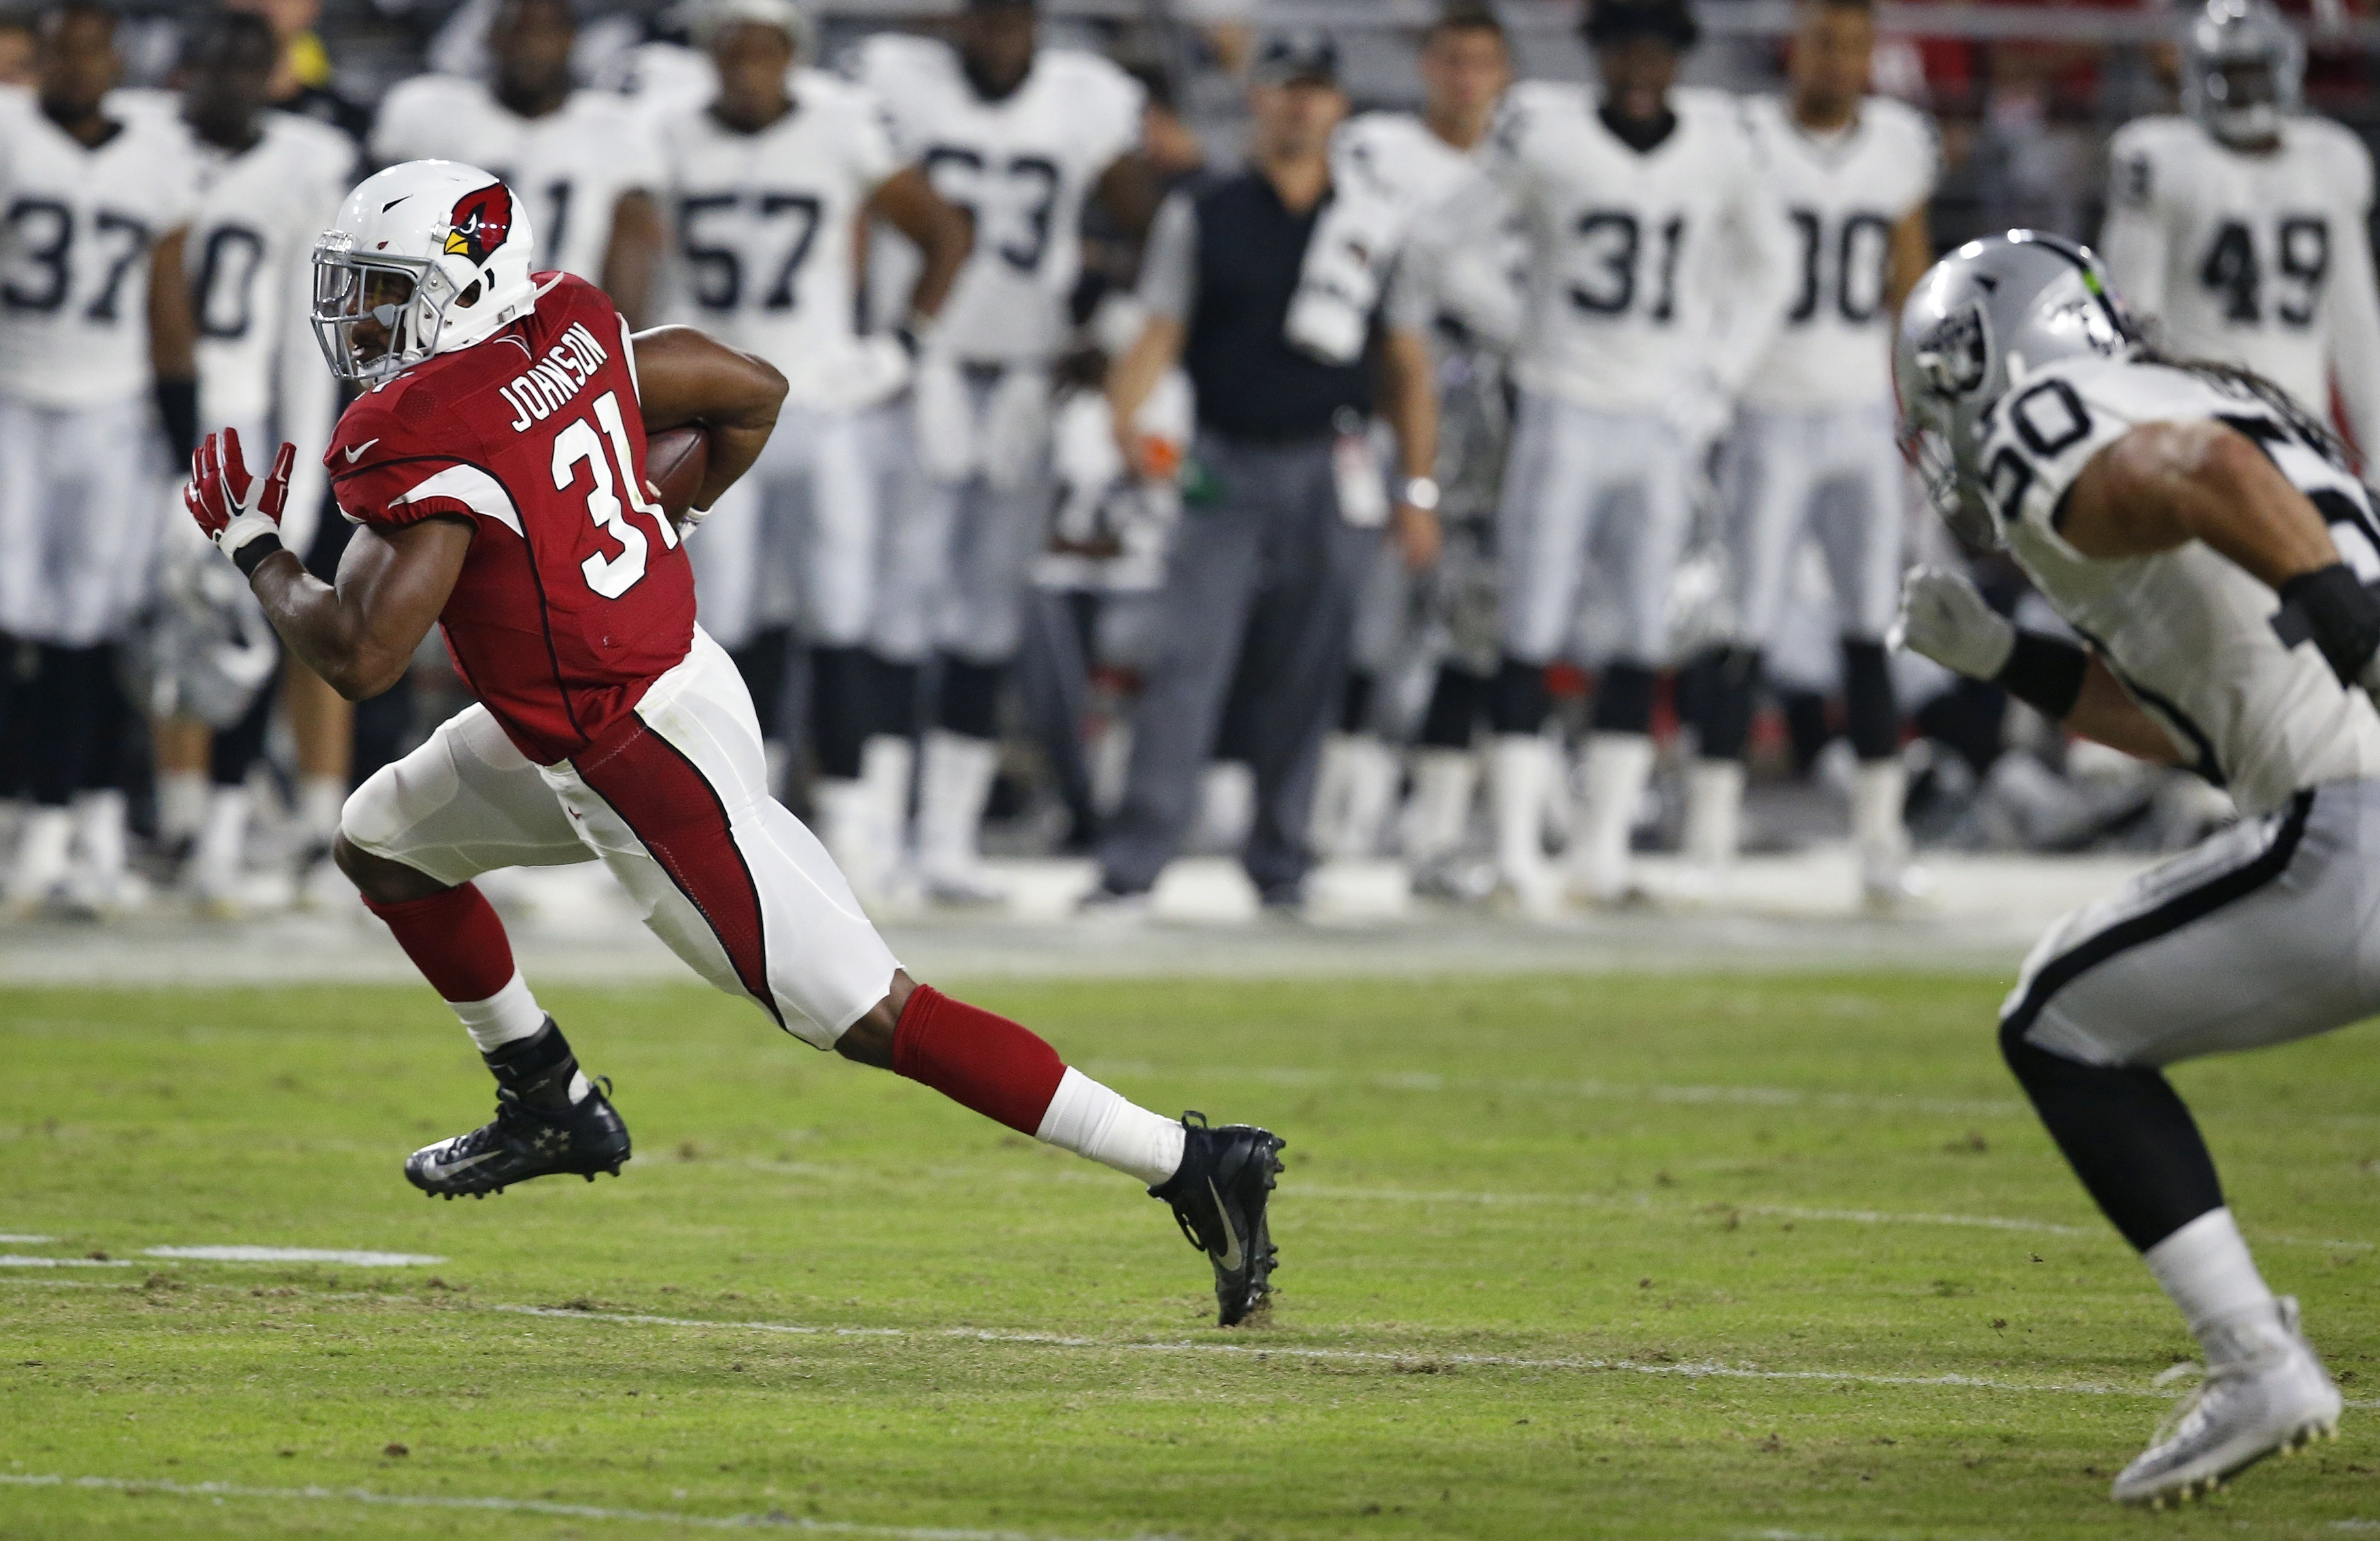 Arizona Cardinals running back David Johnson (31) runs in the open field as he gets past Oakland Raiders' Ben Heeney (50) during the first half of an NFL preseason football game Friday, Aug. 12, 2016, in Glendale, Ariz. (AP Photo/Ross D. Franklin)